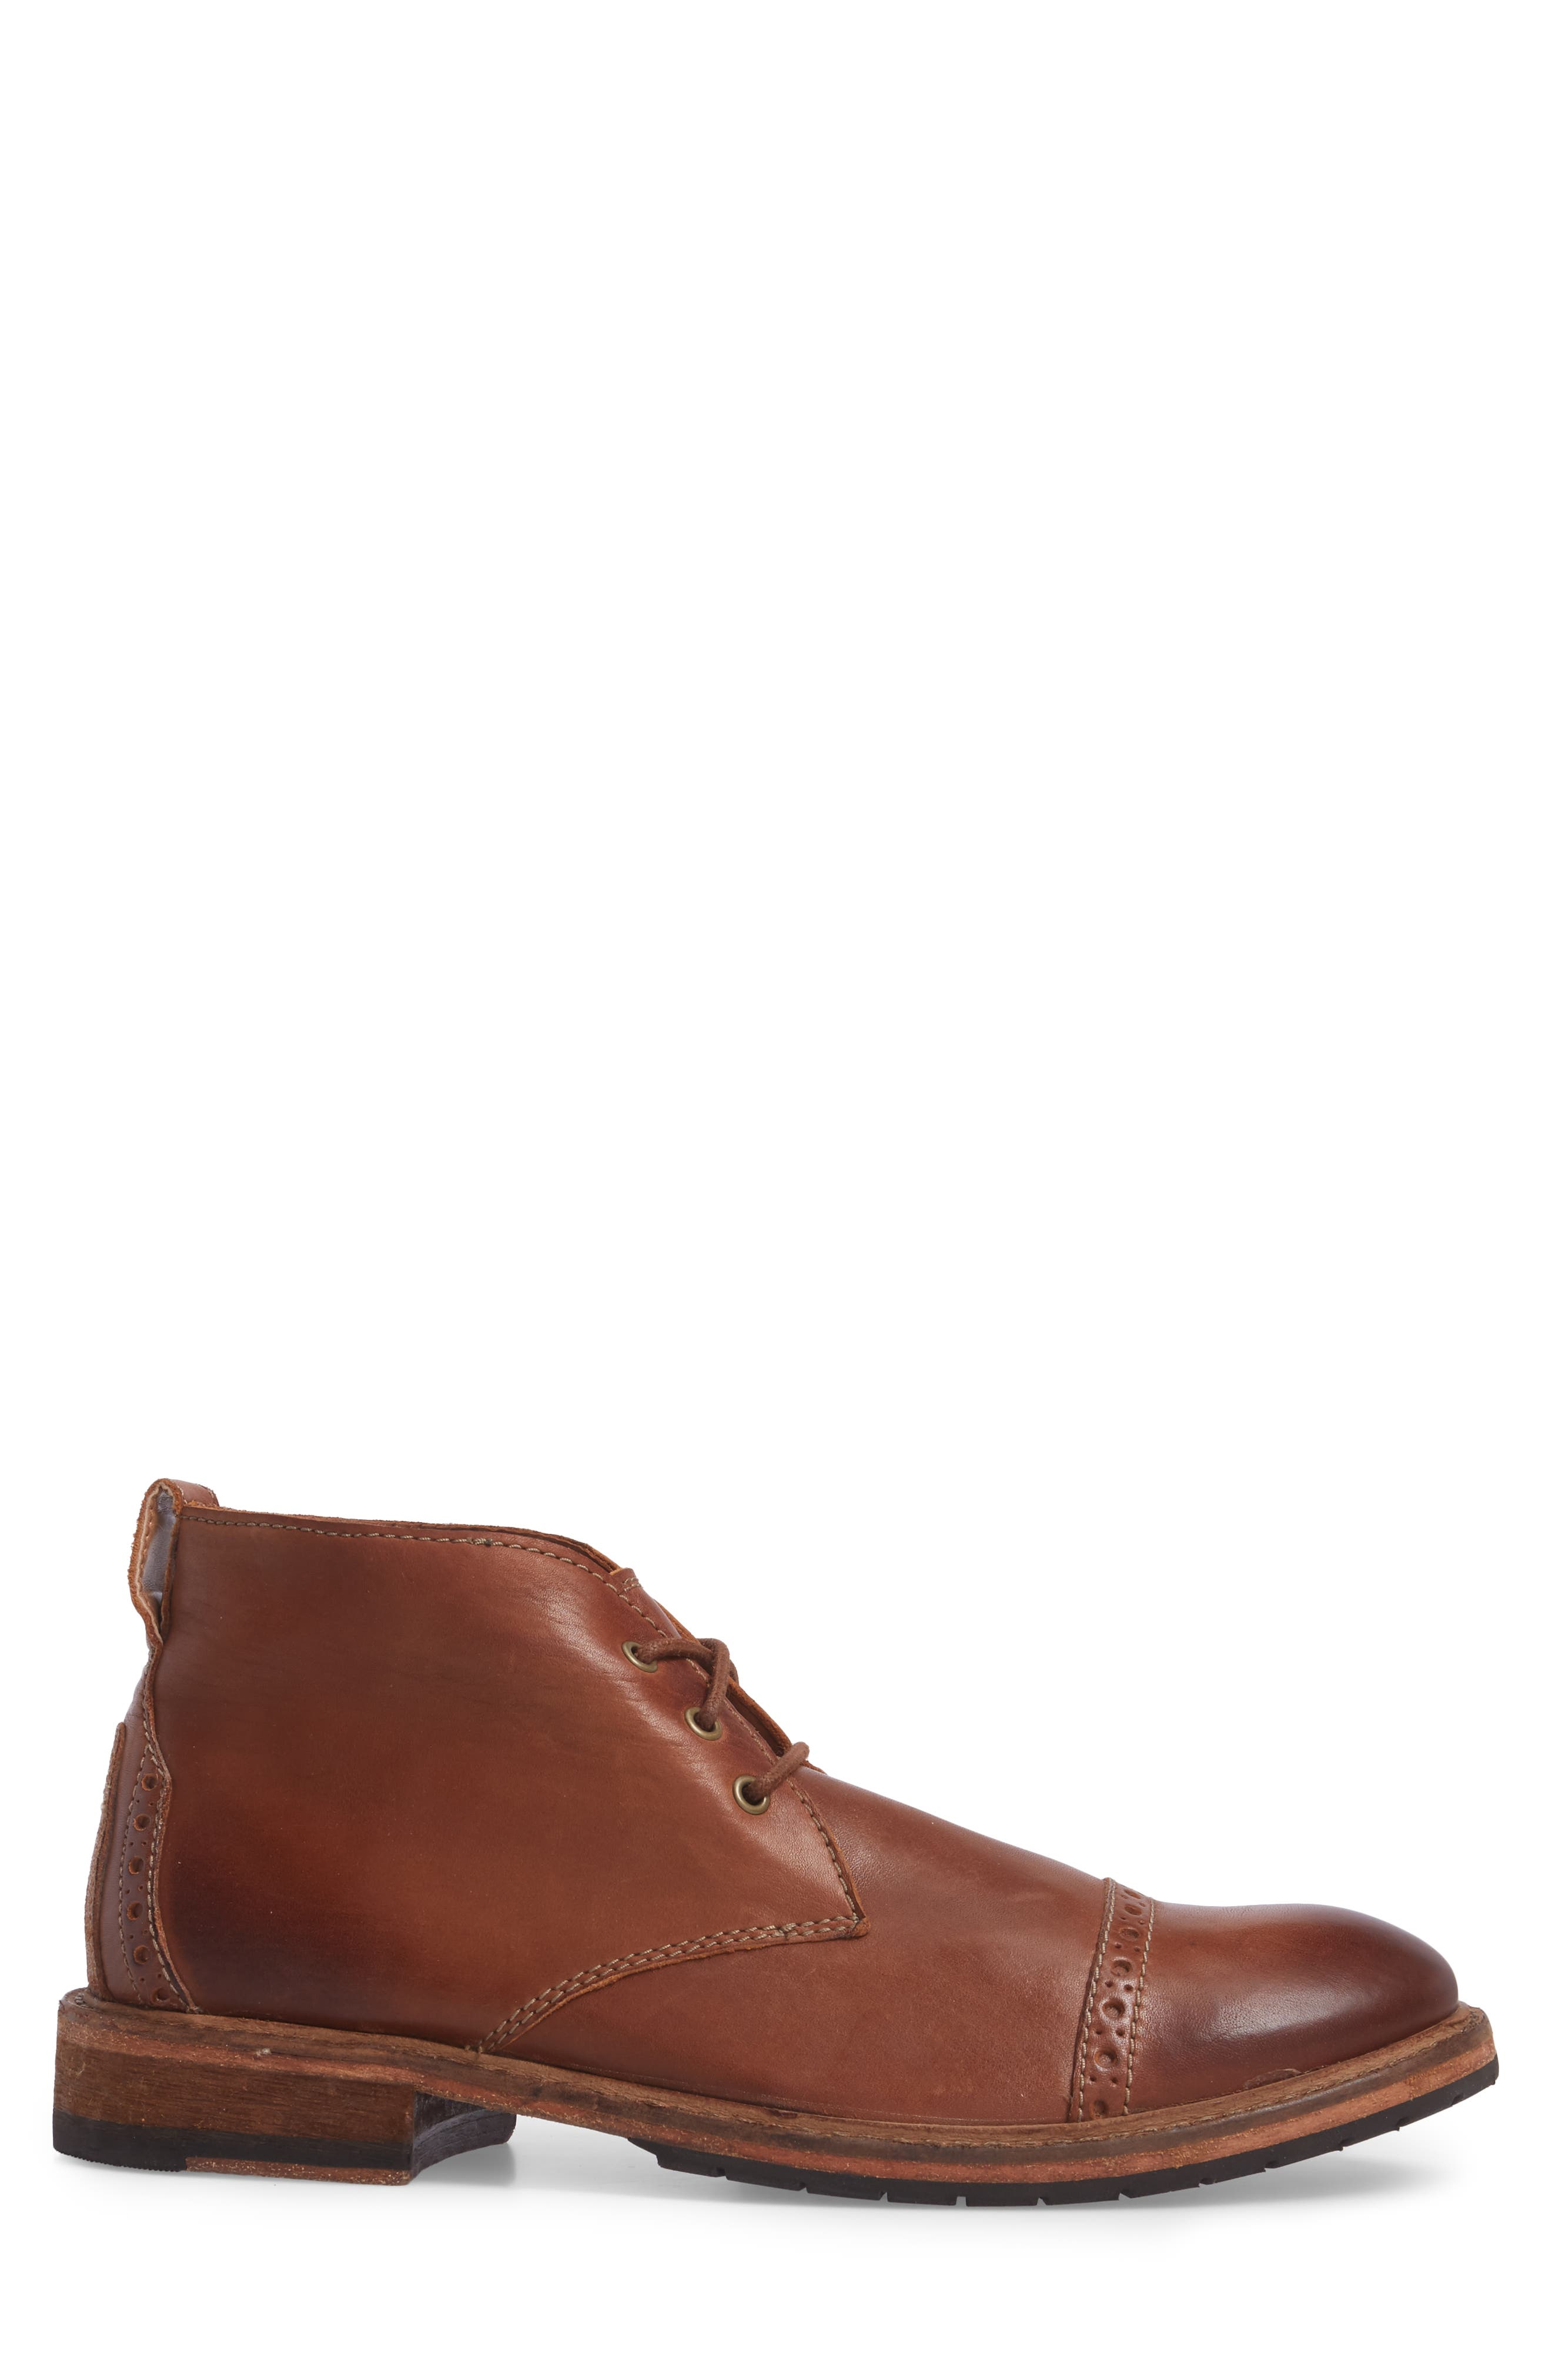 Clarkdale Water Resistant Chukka Boot,                             Alternate thumbnail 6, color,